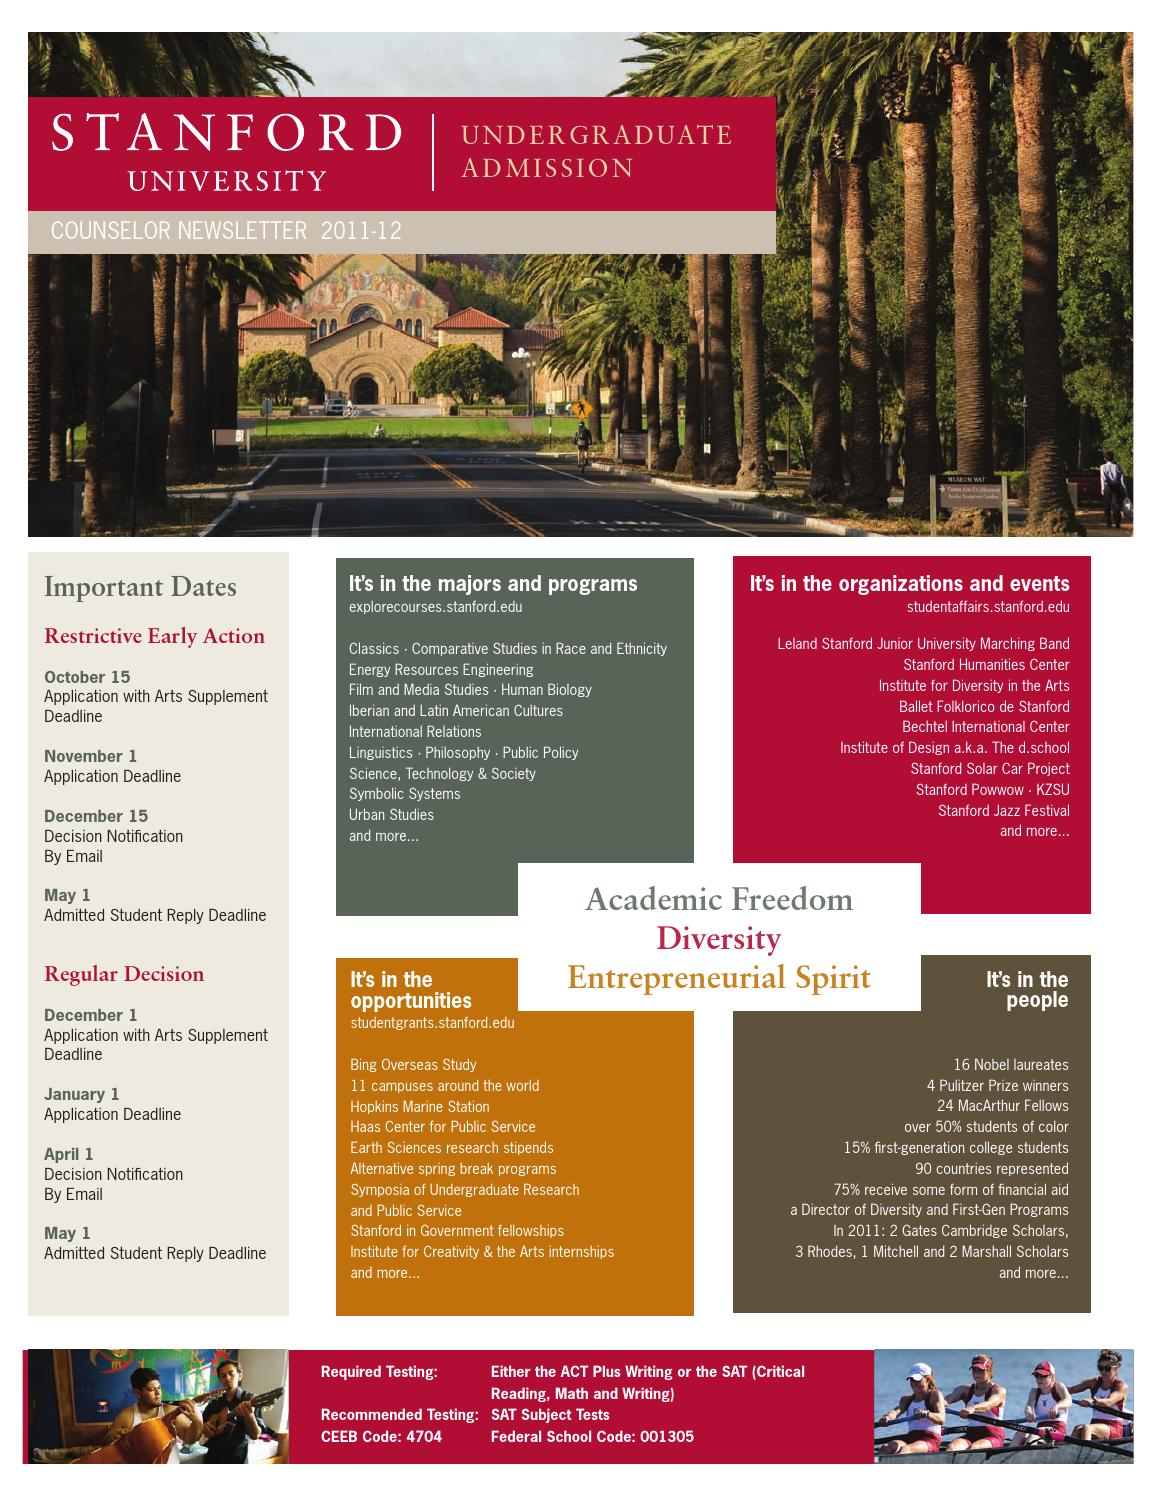 Counselor Newsletter 2011-2012